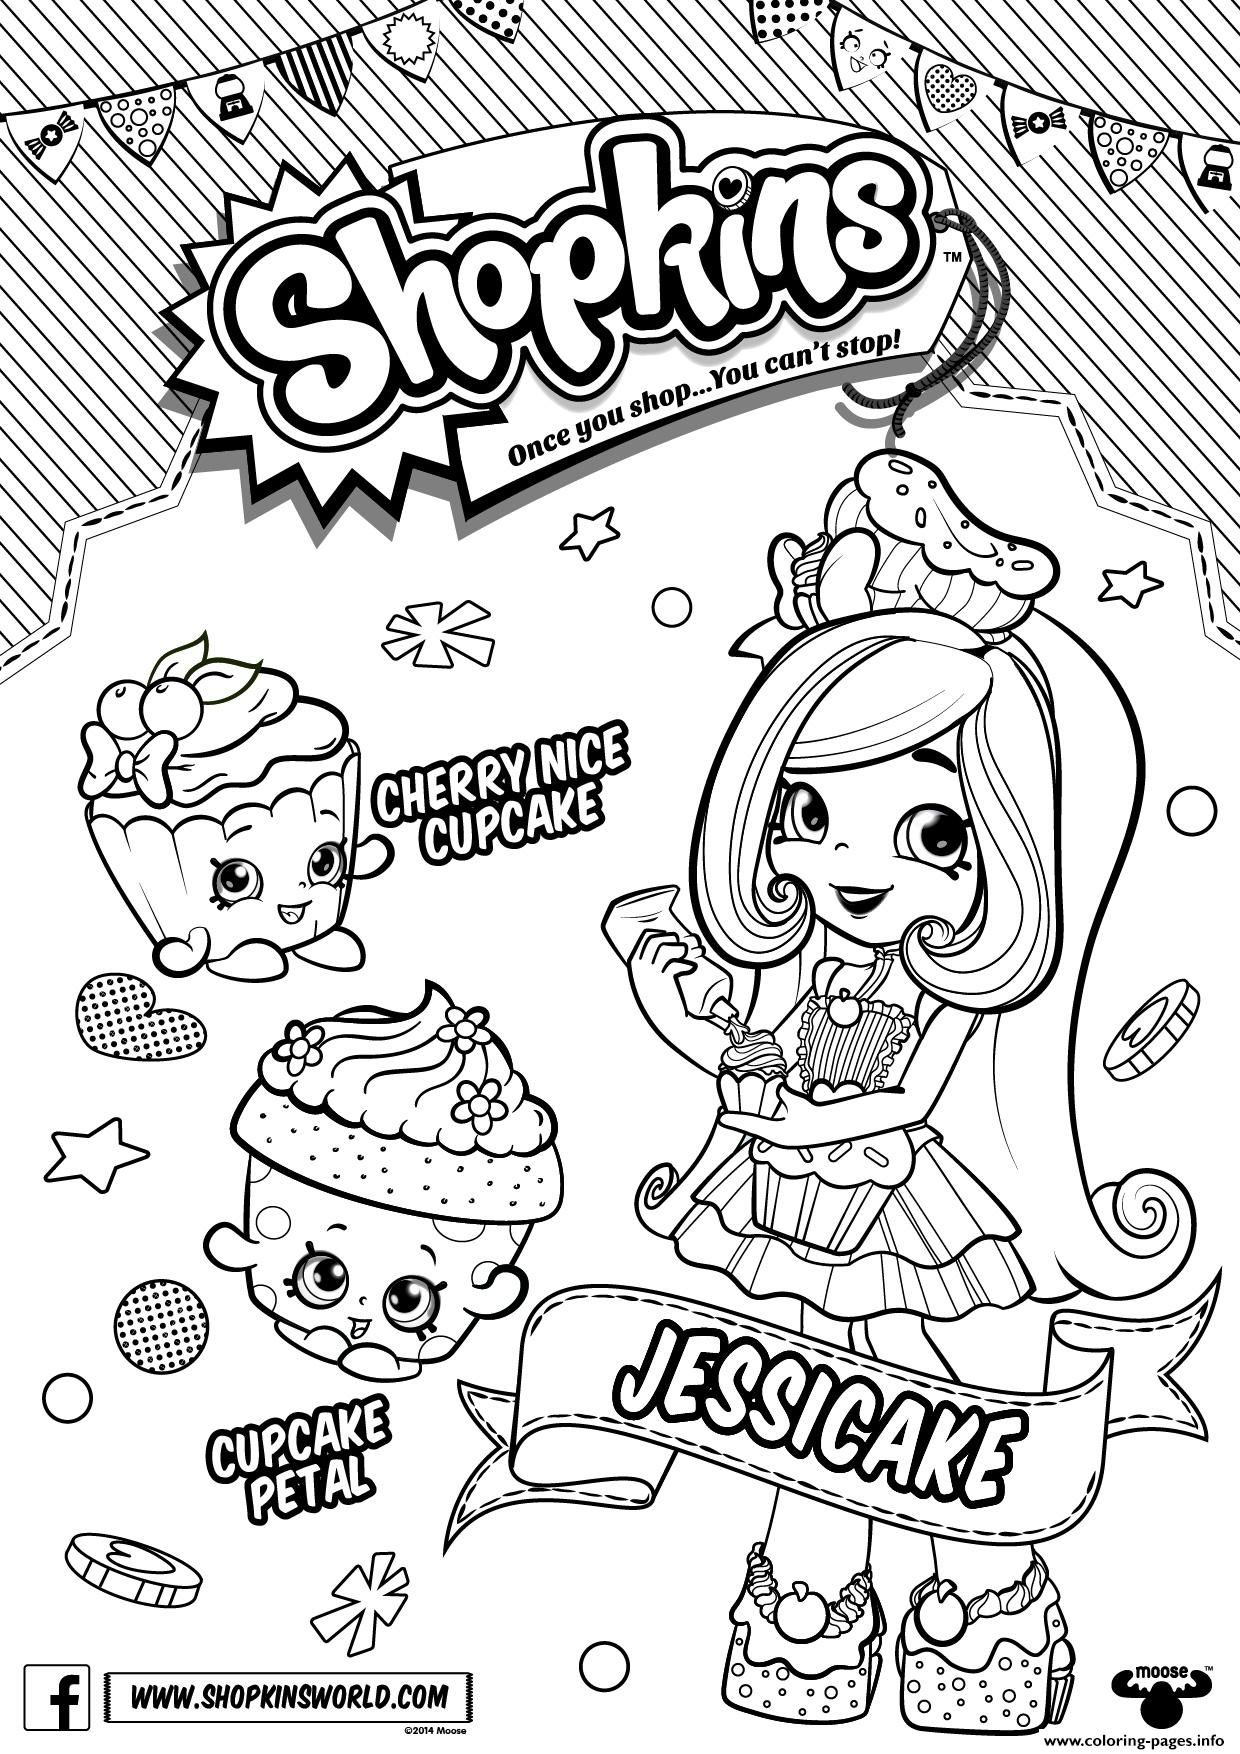 Print Shopkins Season 6 Chef Club Coloring Pages